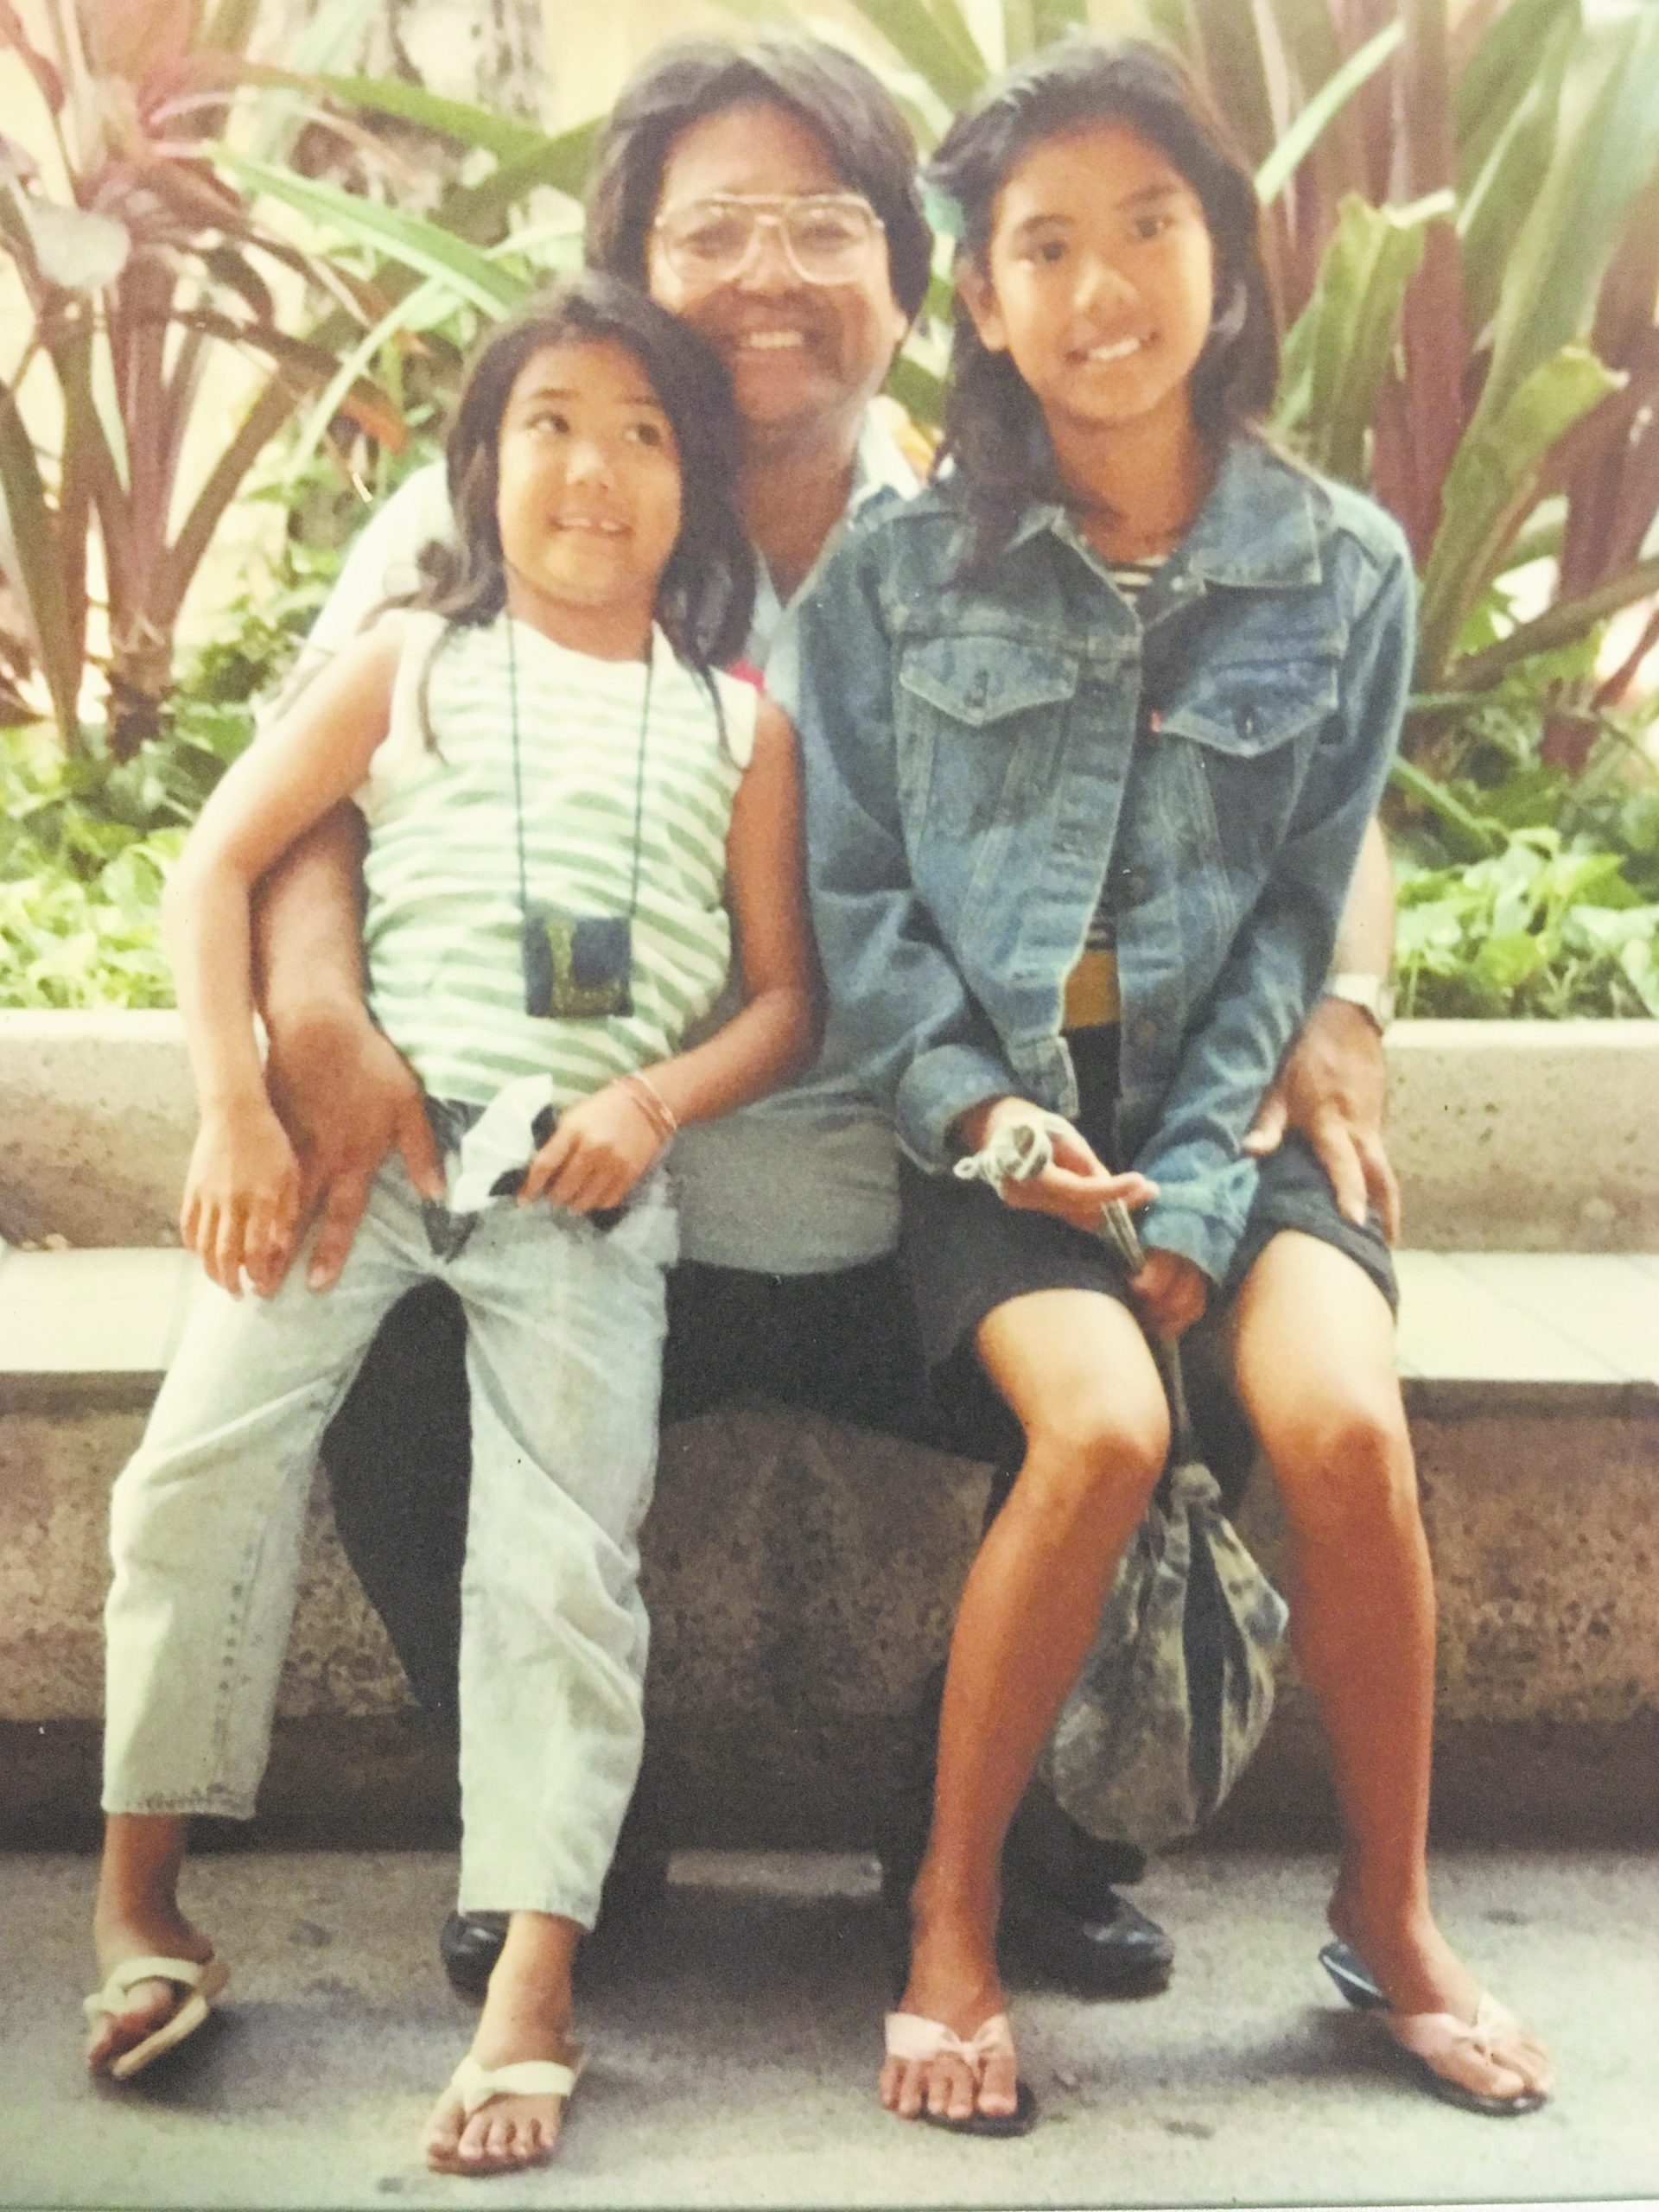 Lynn Miyahira (left) and her sister Ann are pictured with their dad, Wayne Miyahira, in 1989 at the Honolulu International Airport. At the time, Wayne was president-elect of the then-United Okinawan Association of Hawaii. He has just gotten off the plane after having traveled to Okinawa with 1989-90 president John Tasato and the UOA Study Tour. Lynn and Ann were at the airport to welcome their dad home. (Photo by Karleen Chinen)